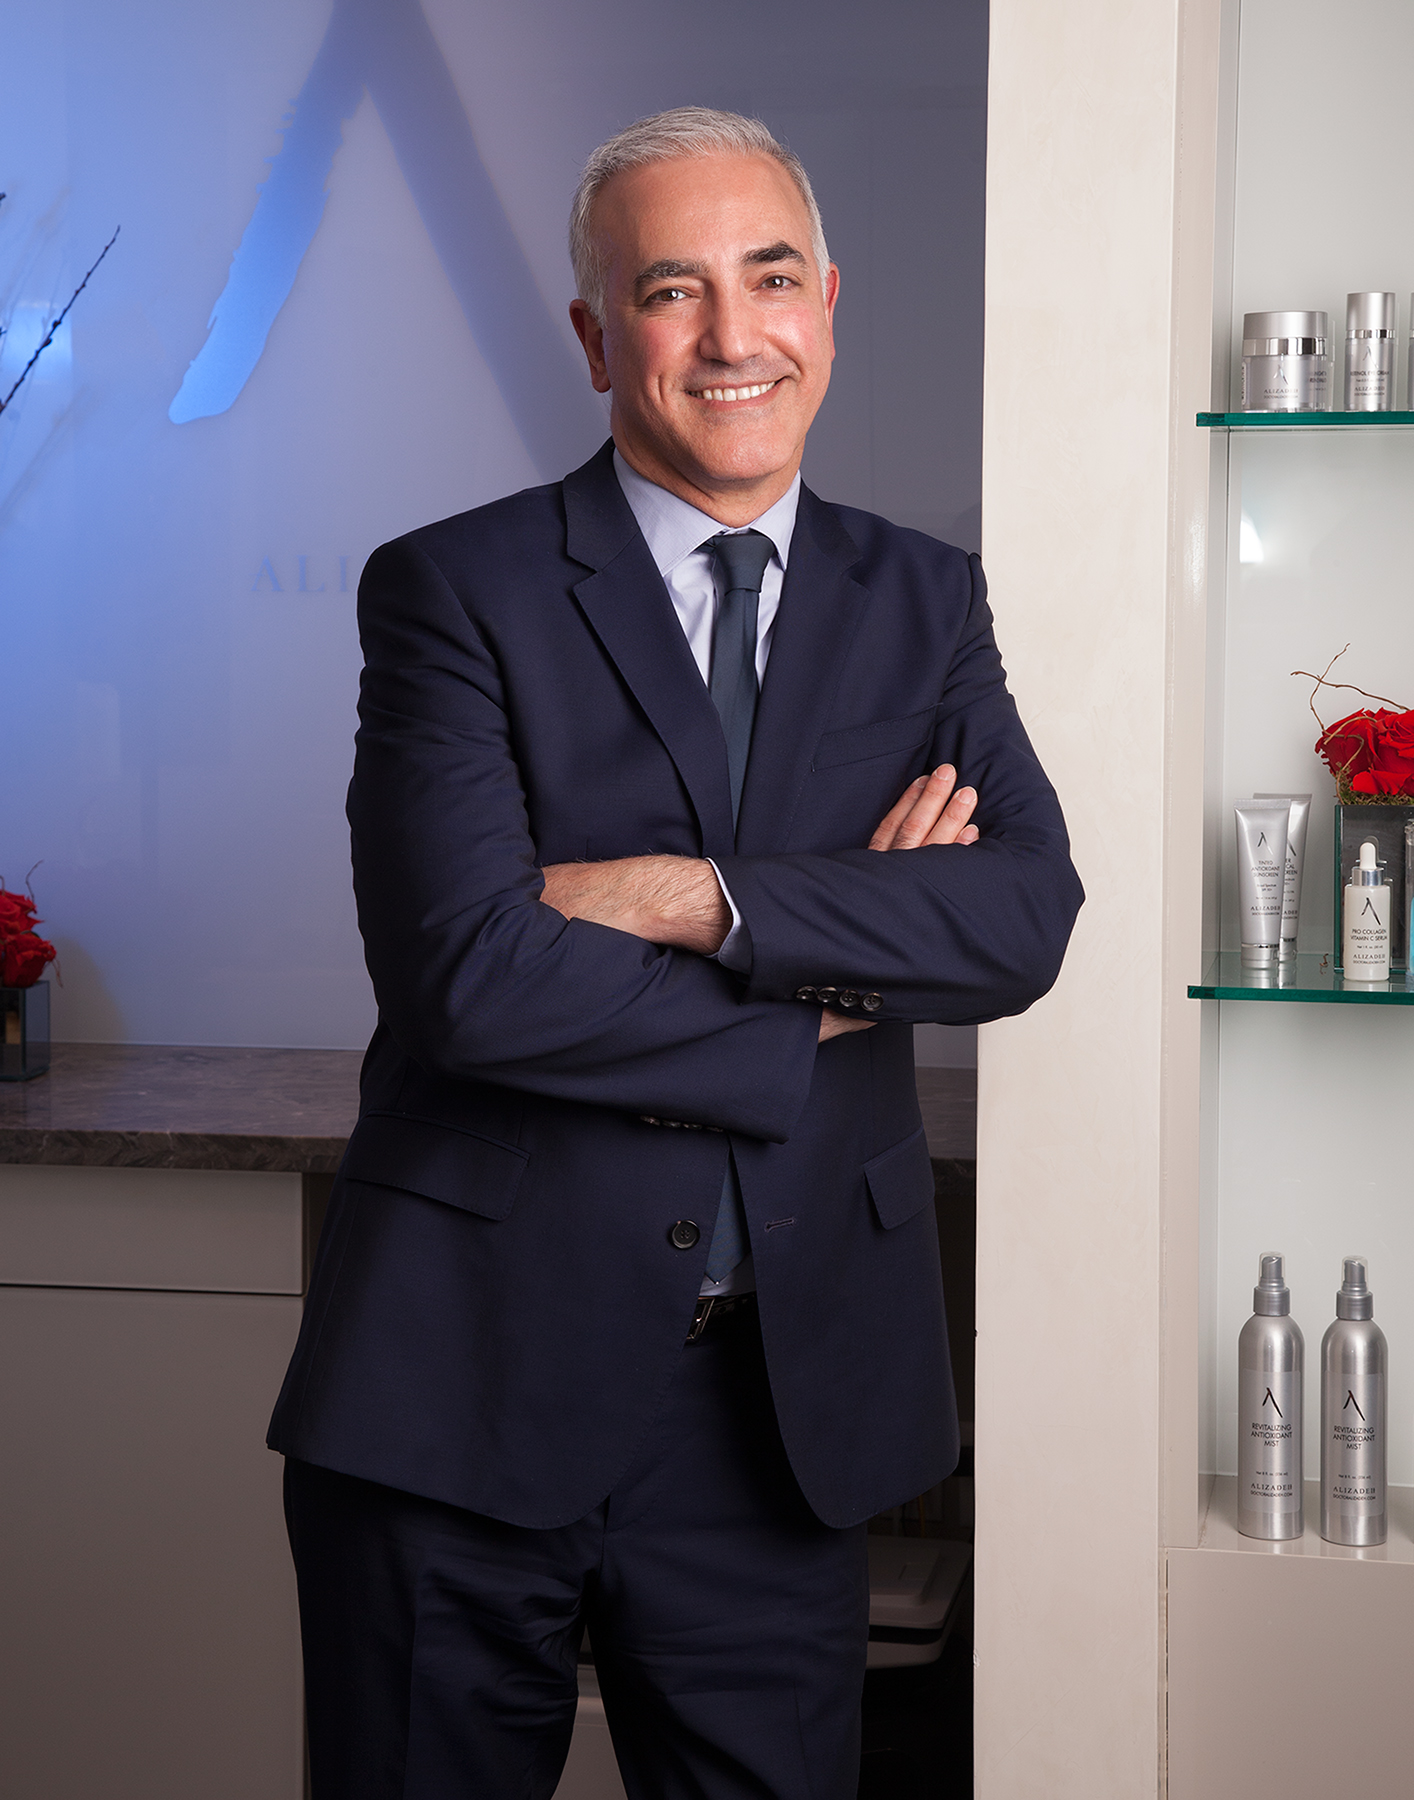 Dr.-Kaveh-Alizadeh,-MD-NEW-YORK-COSMOPLASTIC-SURGERY-EDITORIAL-PROFILE-PORTRAIT-©-JONATHAN-R-BECKERMAN-PHOTOGRAPHY.jpg